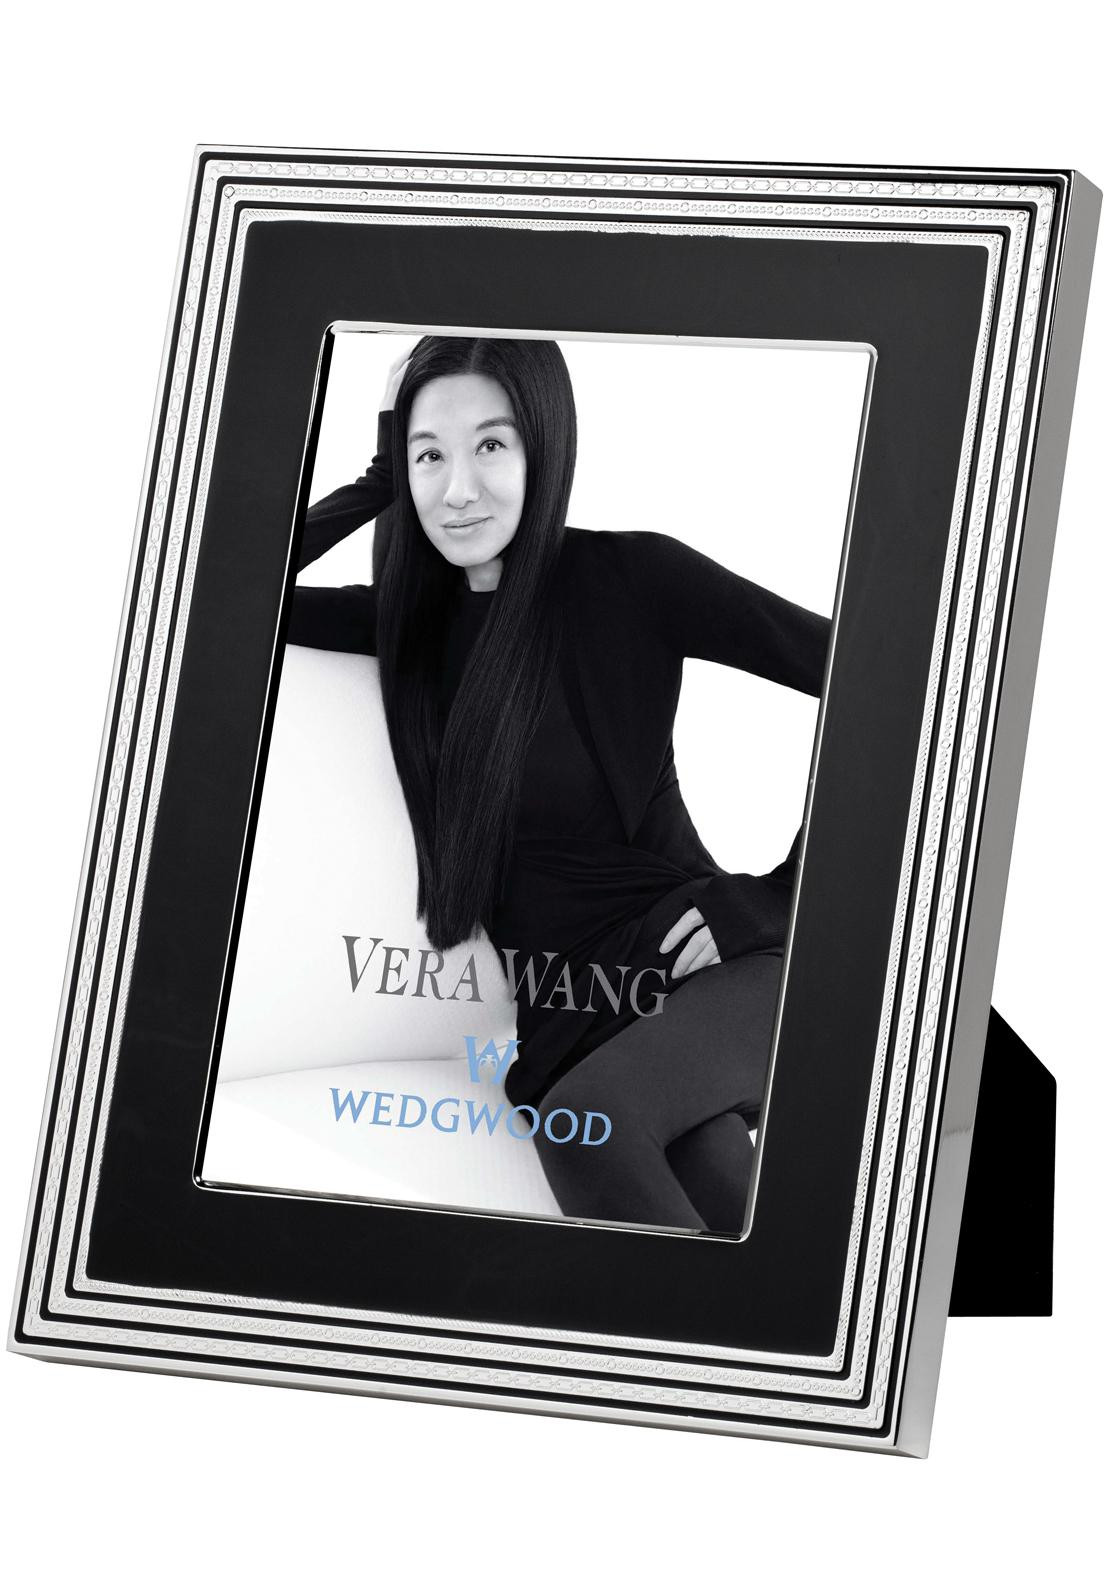 Vera Wang Wedgwood With Love Noir Photo Frame, 4 x 6 inches